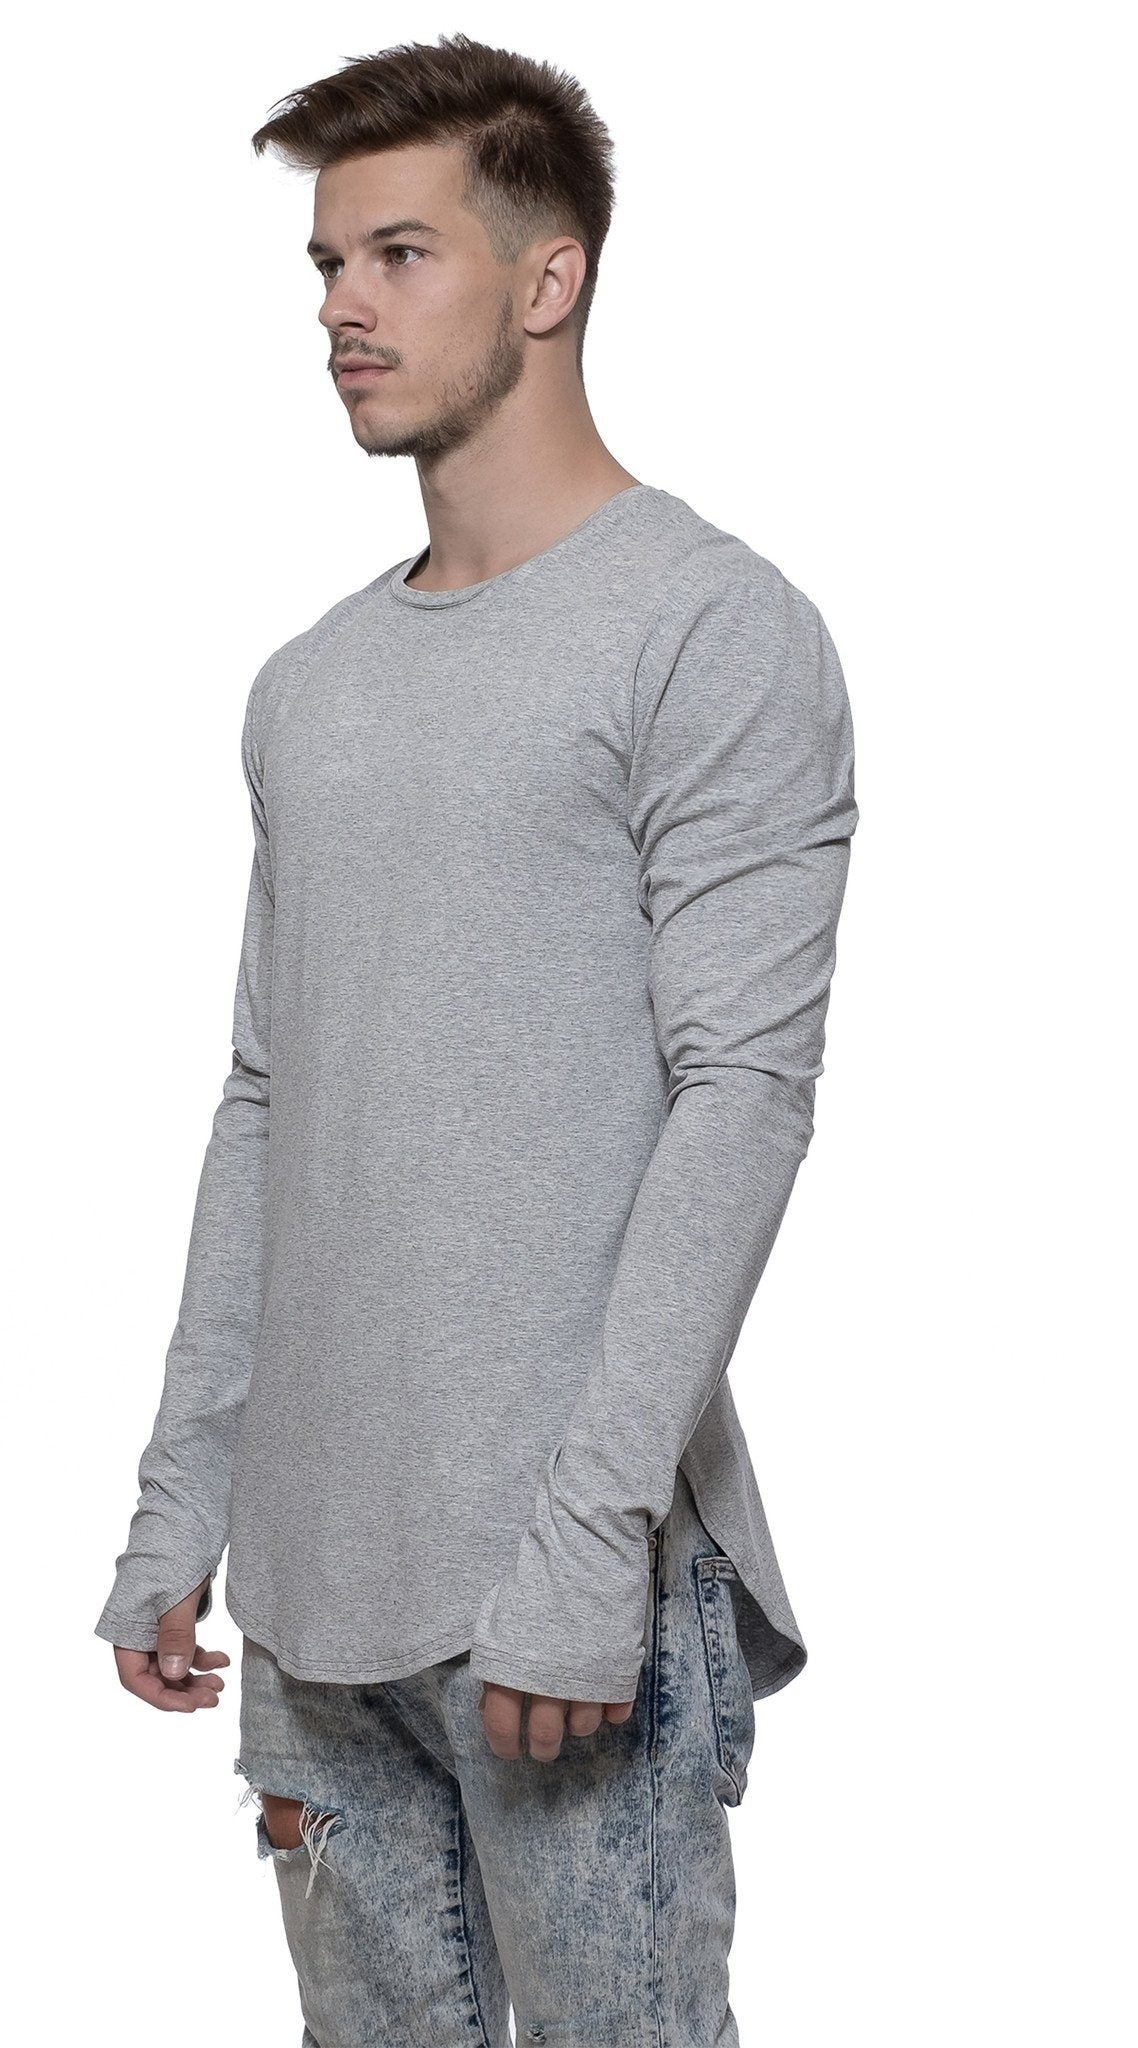 TheG viscose handmade designer under long tee gray